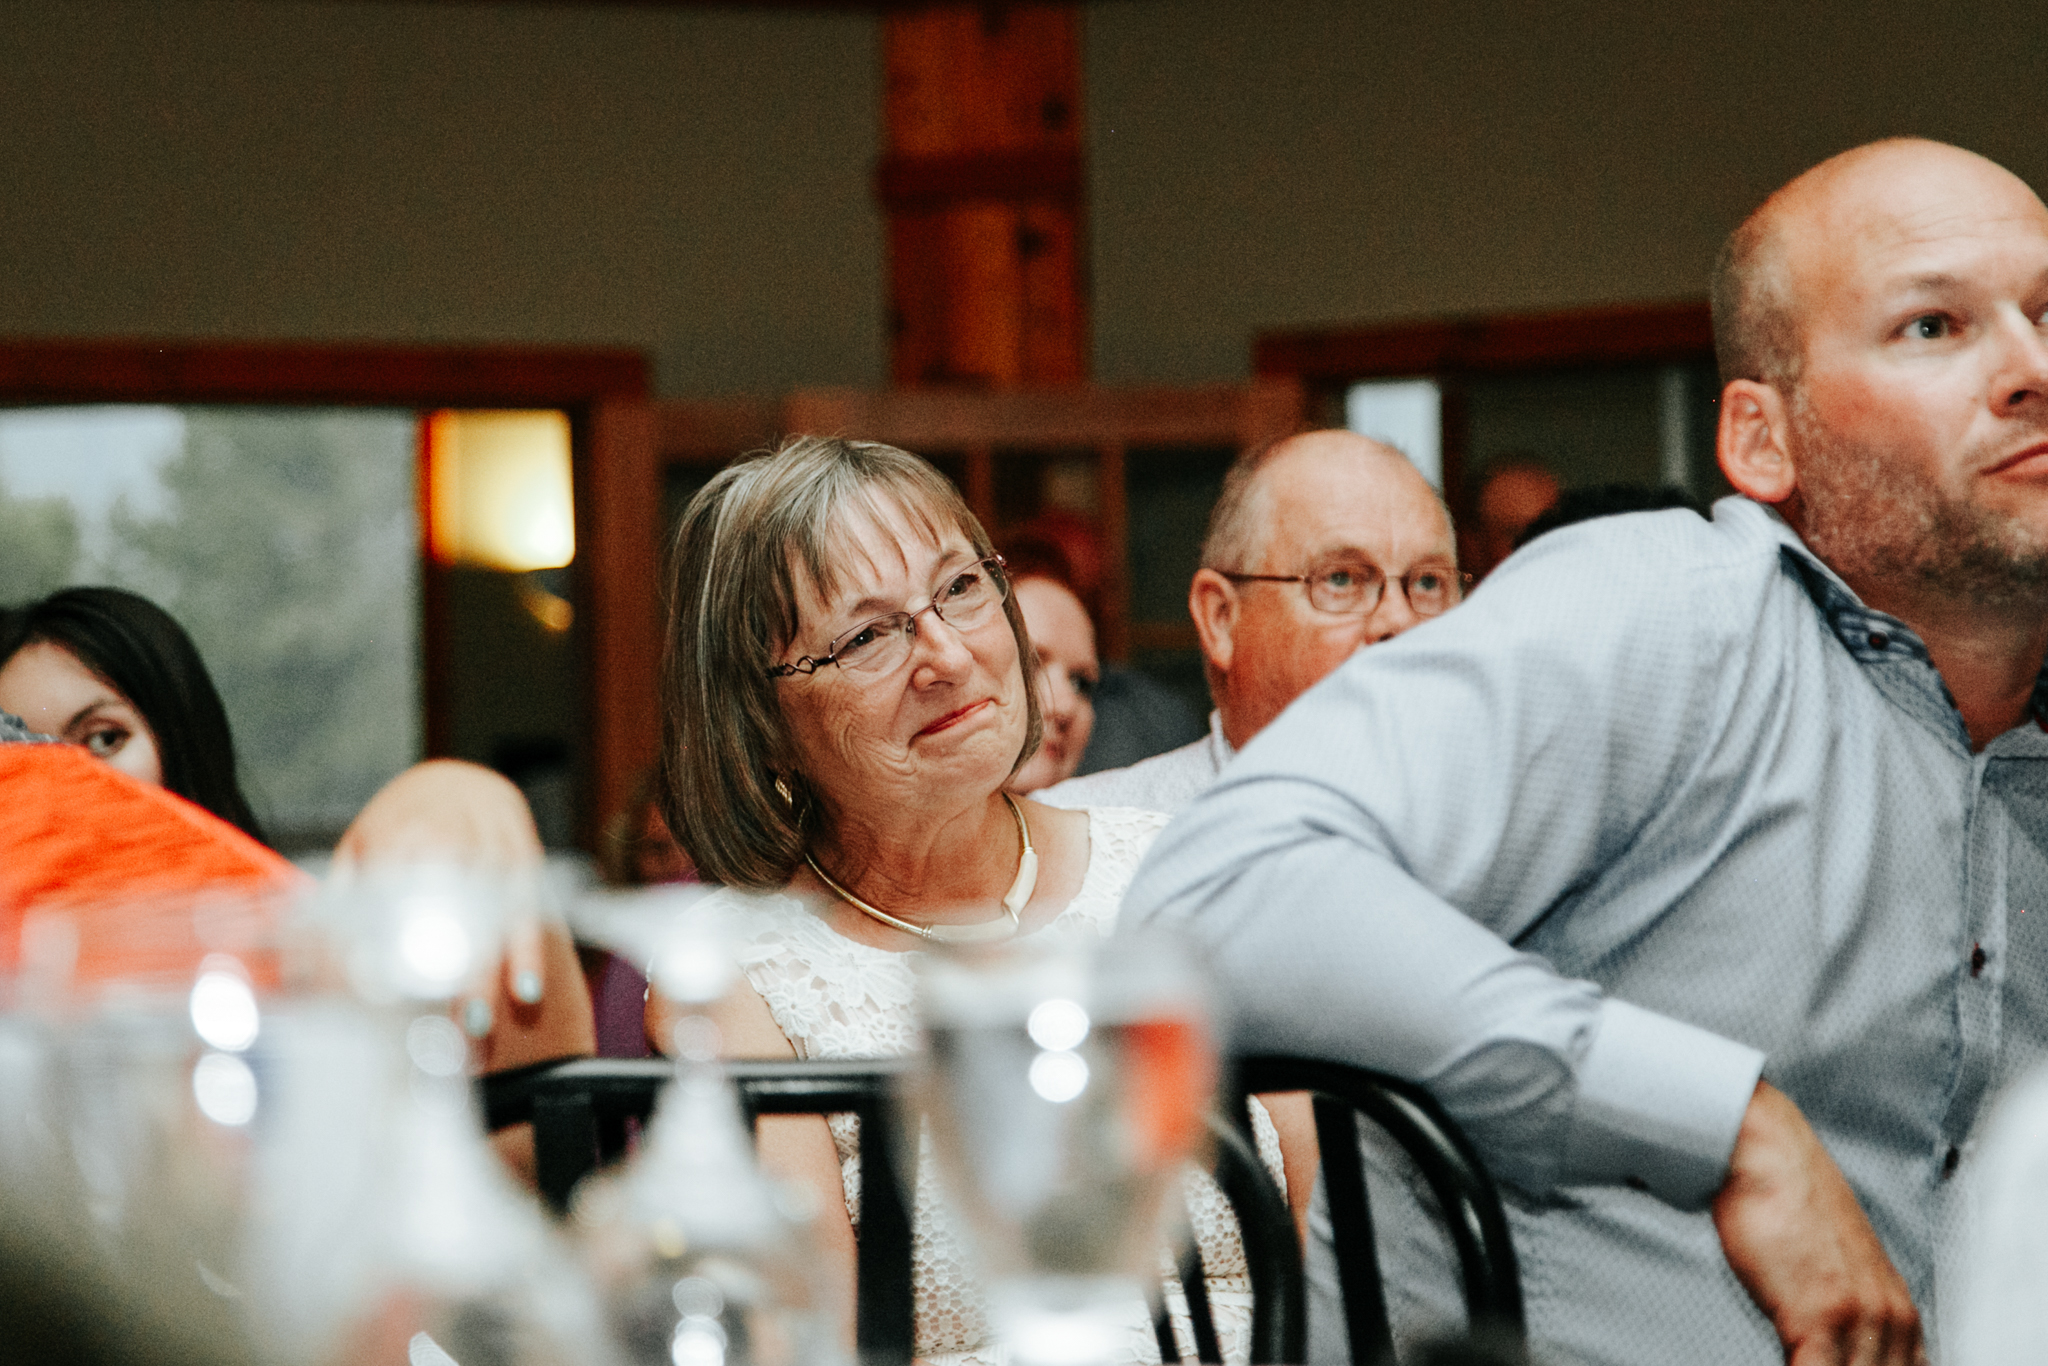 castle-mountain-wedding-photographer-love-and-be-loved-photography-lethbridge-pincher-creek-crowsnest-pass-yannick-rylee-photo-image-picture-155197.jpg